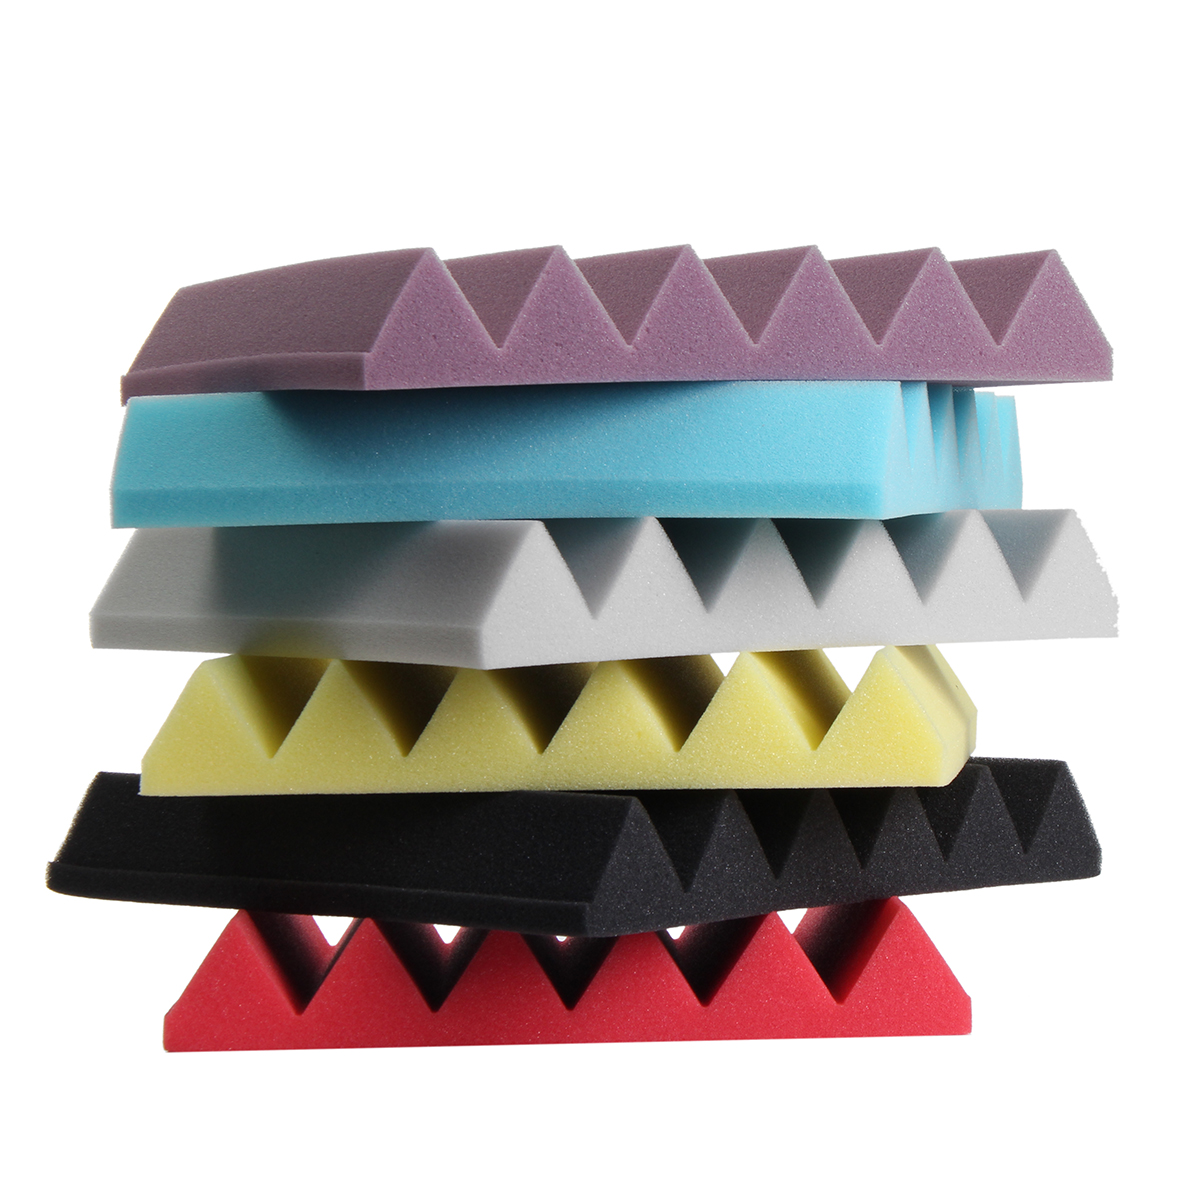 Flame Retardance 30x30x5CM Studio Acoustic Foam Panel Tile Sound Absorption Proofing Wedge